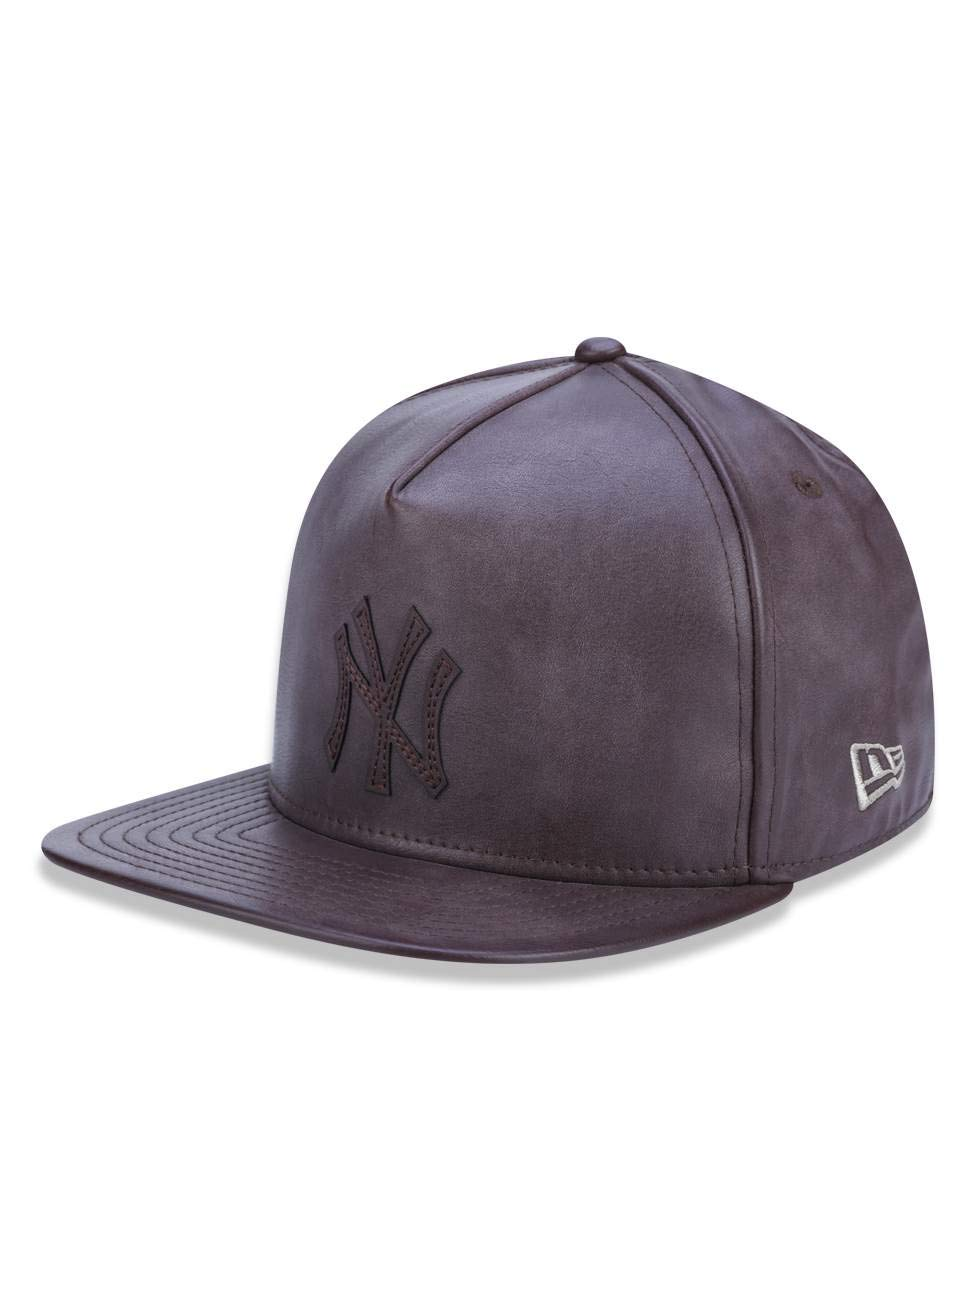 BONE 5950 A-FRAME NEW YORK YANKEES MLB ABA RETA MARROM NEW ERA   Amazon.com.br  Amazon Moda ef4d6670cbd